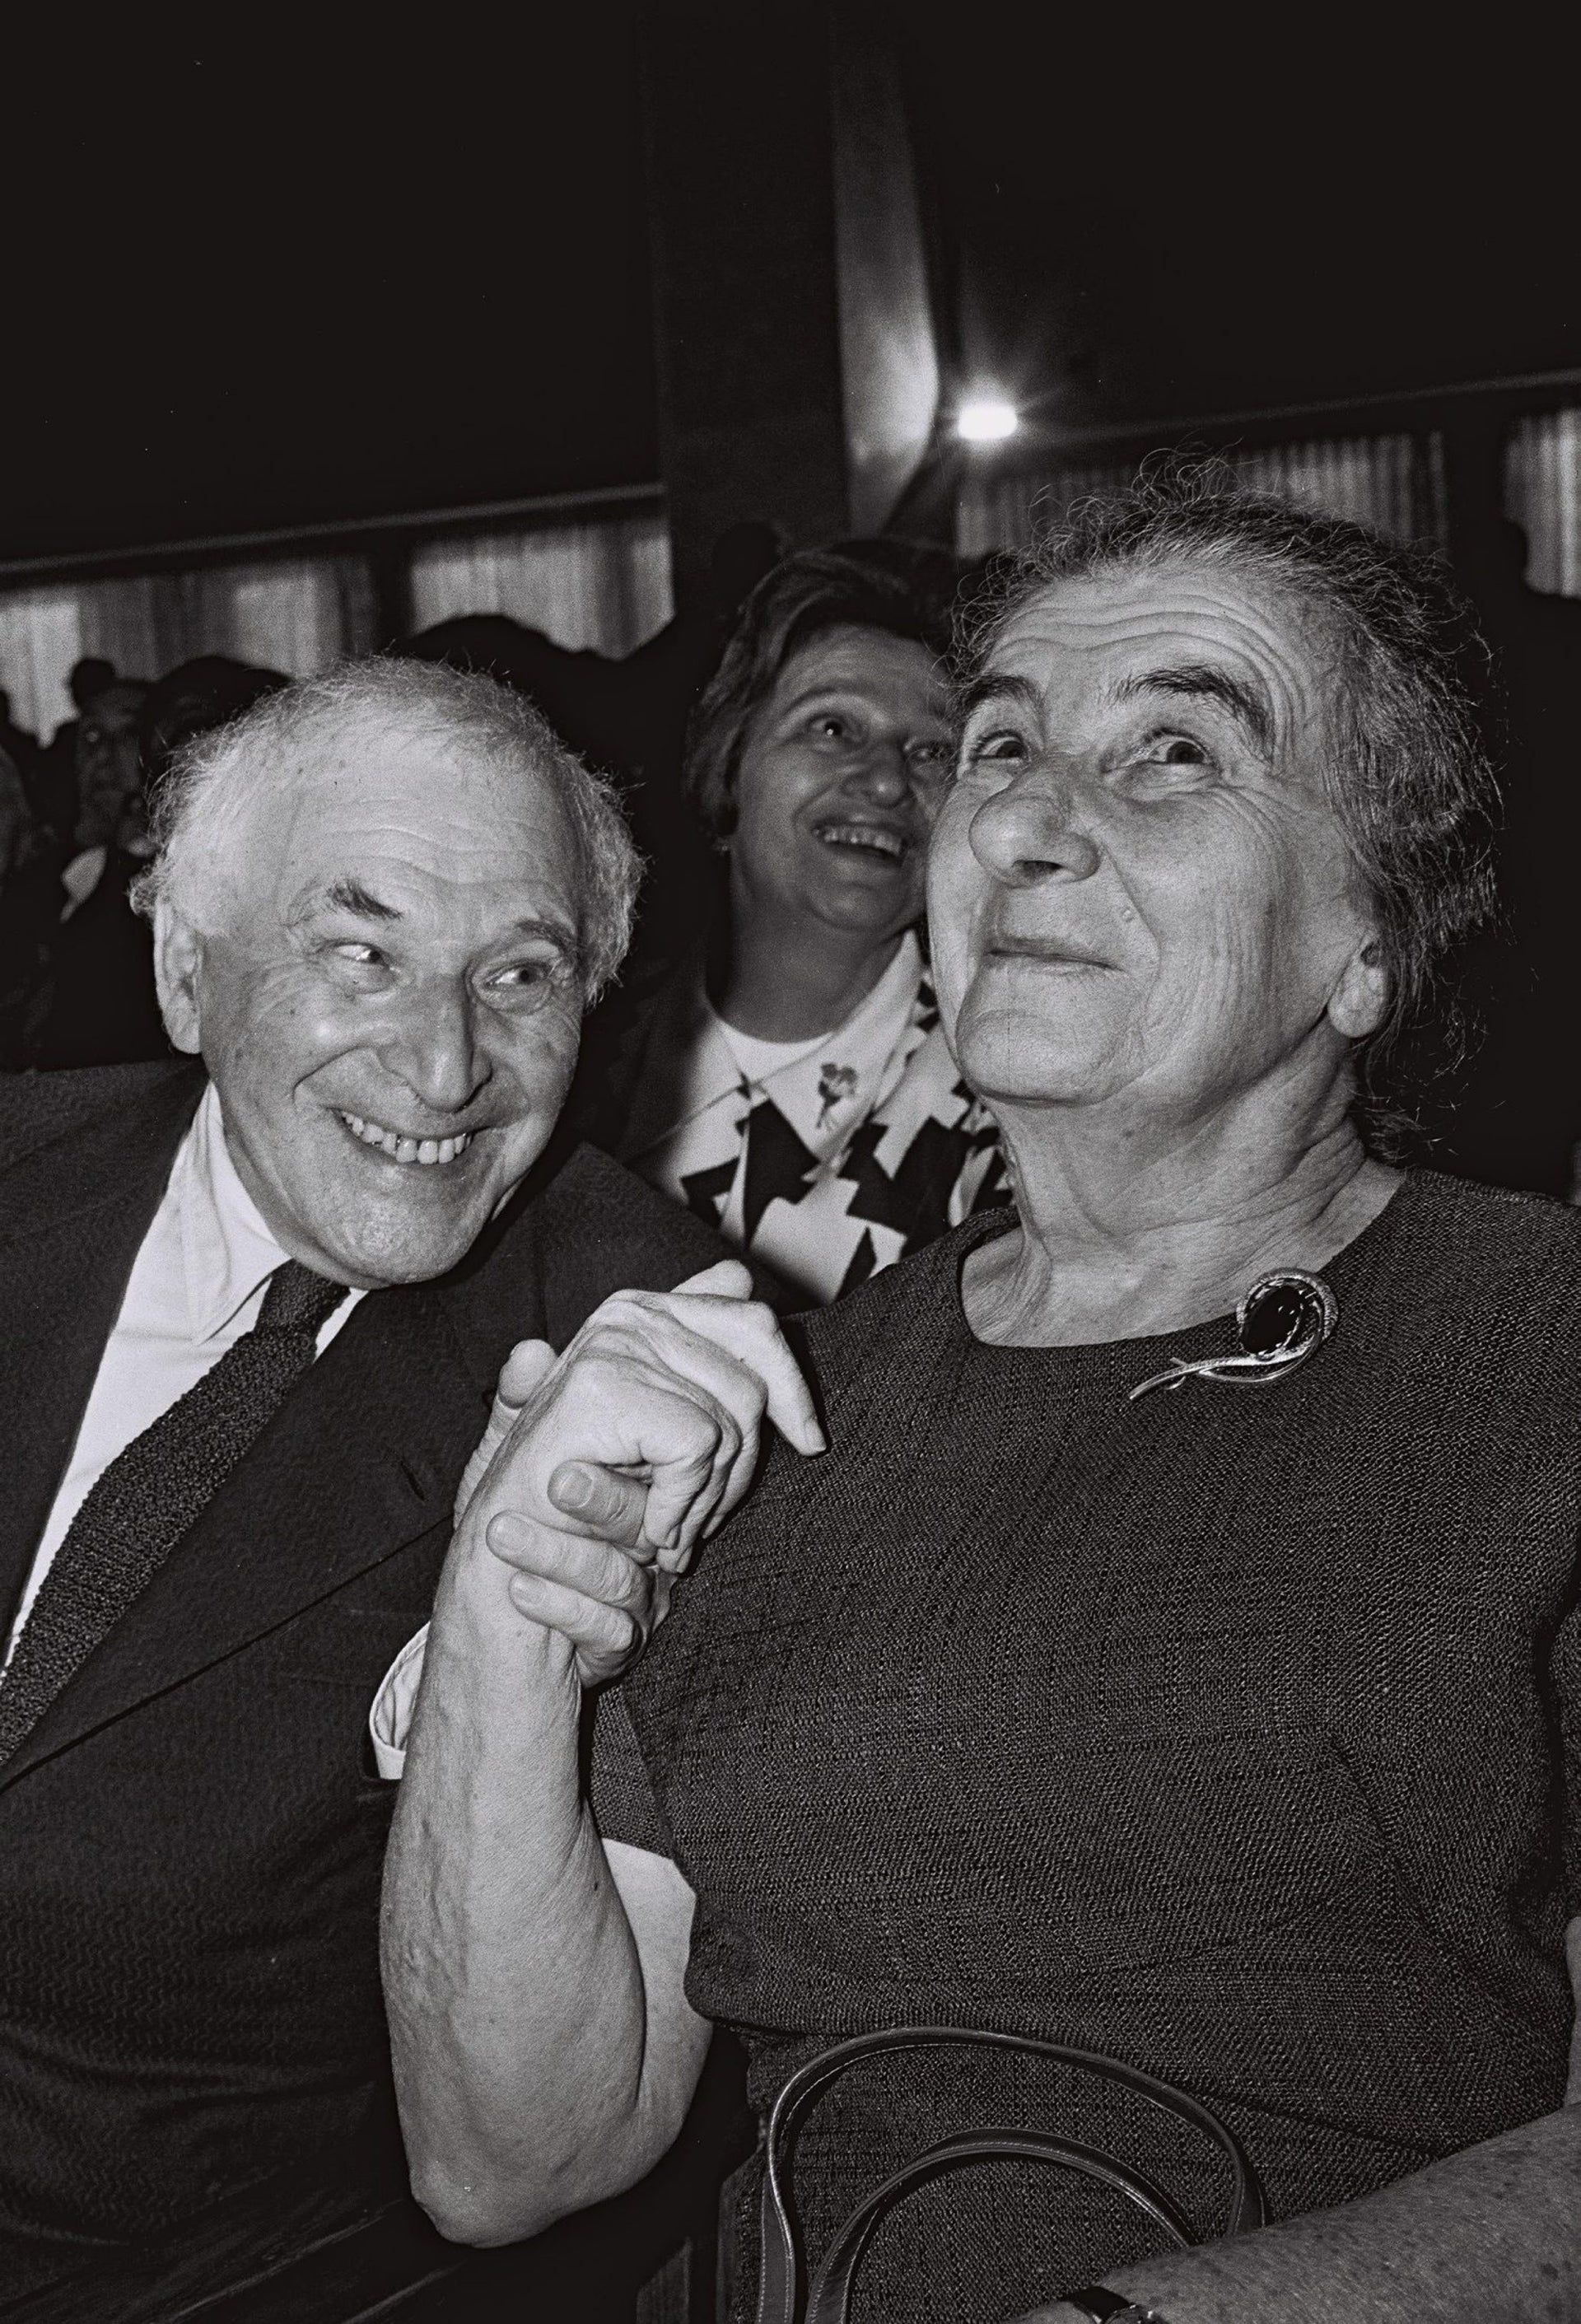 Prime Minister Golda Meir and Marc Chagall attend the unveiling of his Gobelins at the Knesset building in Jerusalem in 1969.